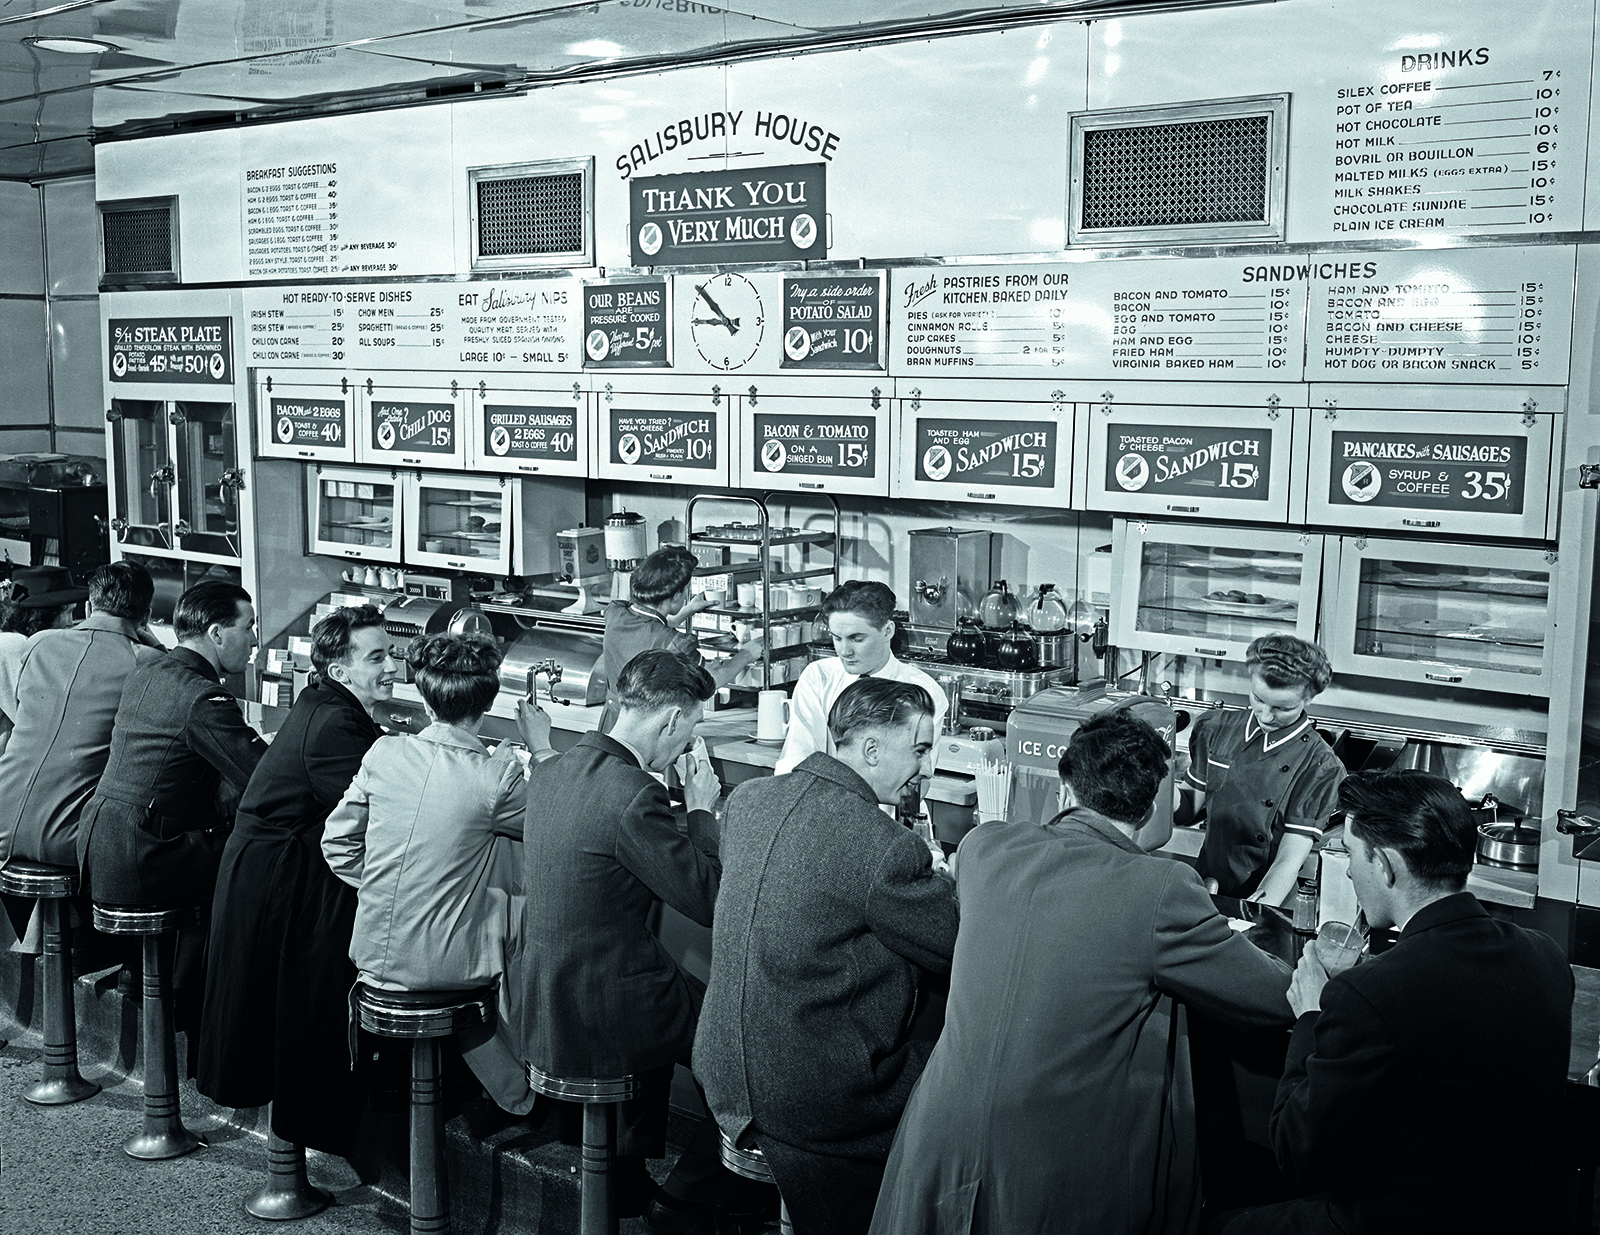 Lunch counter Kennedy Street Salisbury House Winnipeg Manitoba 1940s